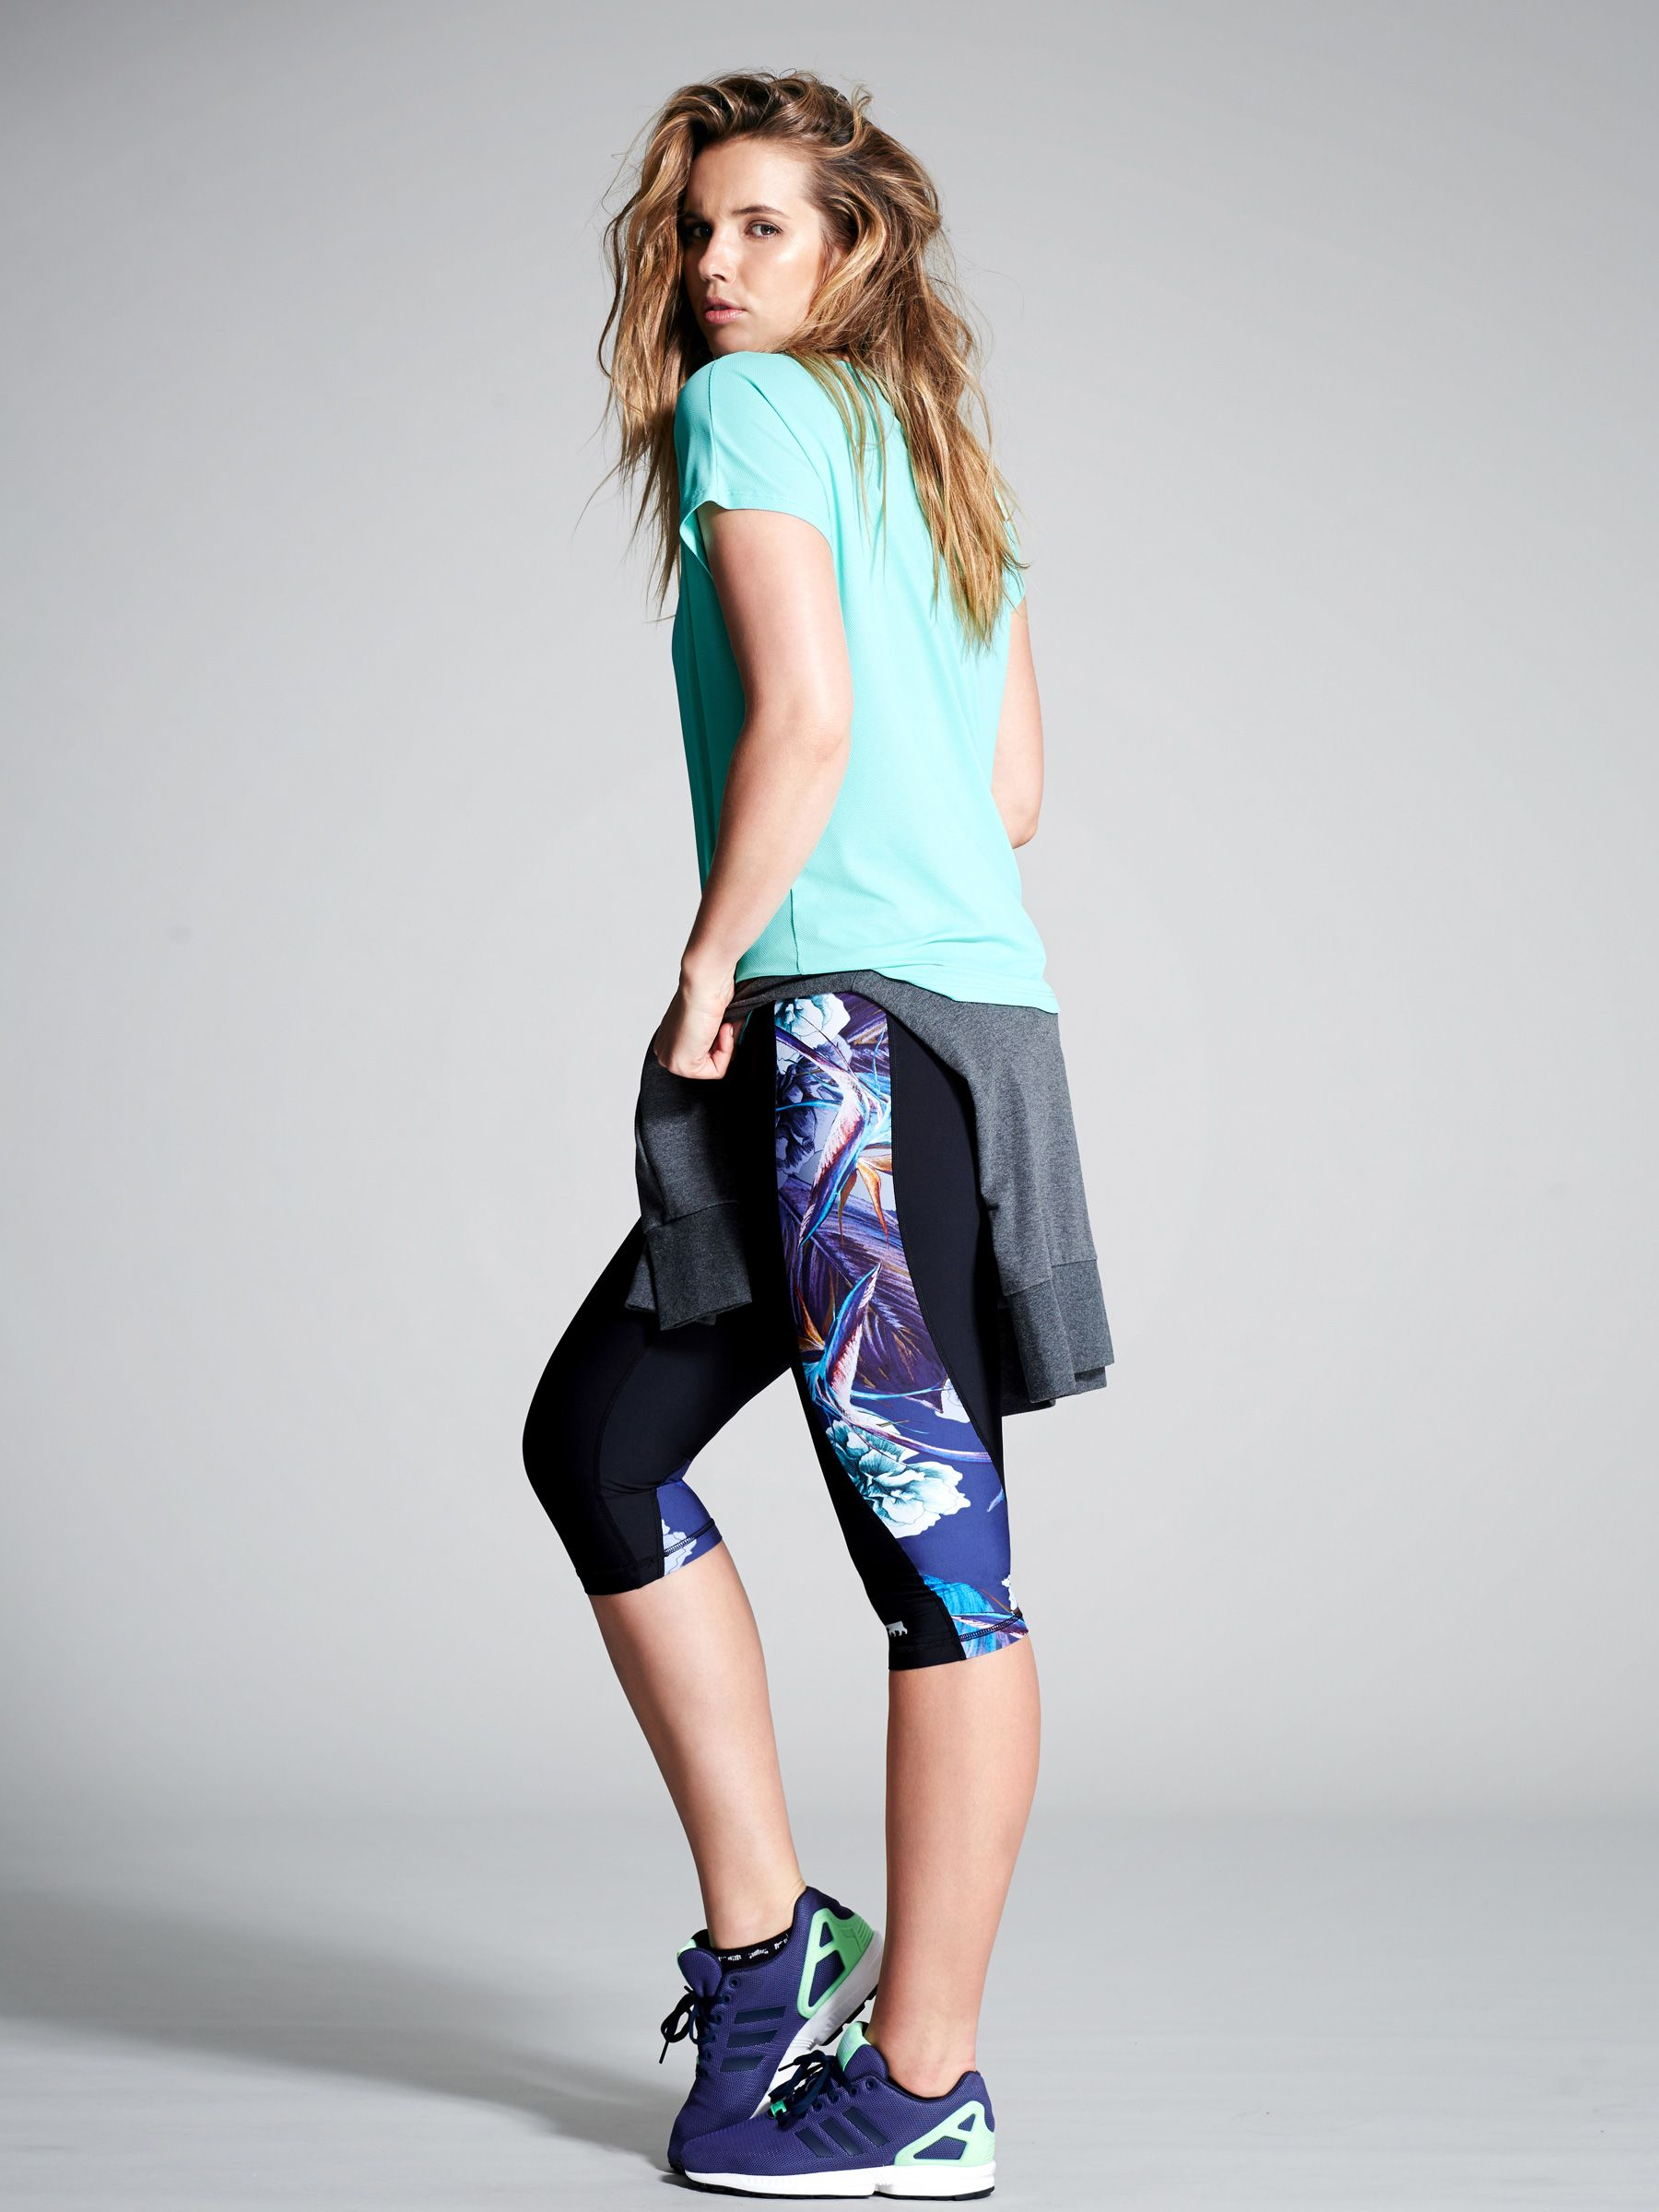 Shop all Yoga Leggings, Workout Clothes and Gear